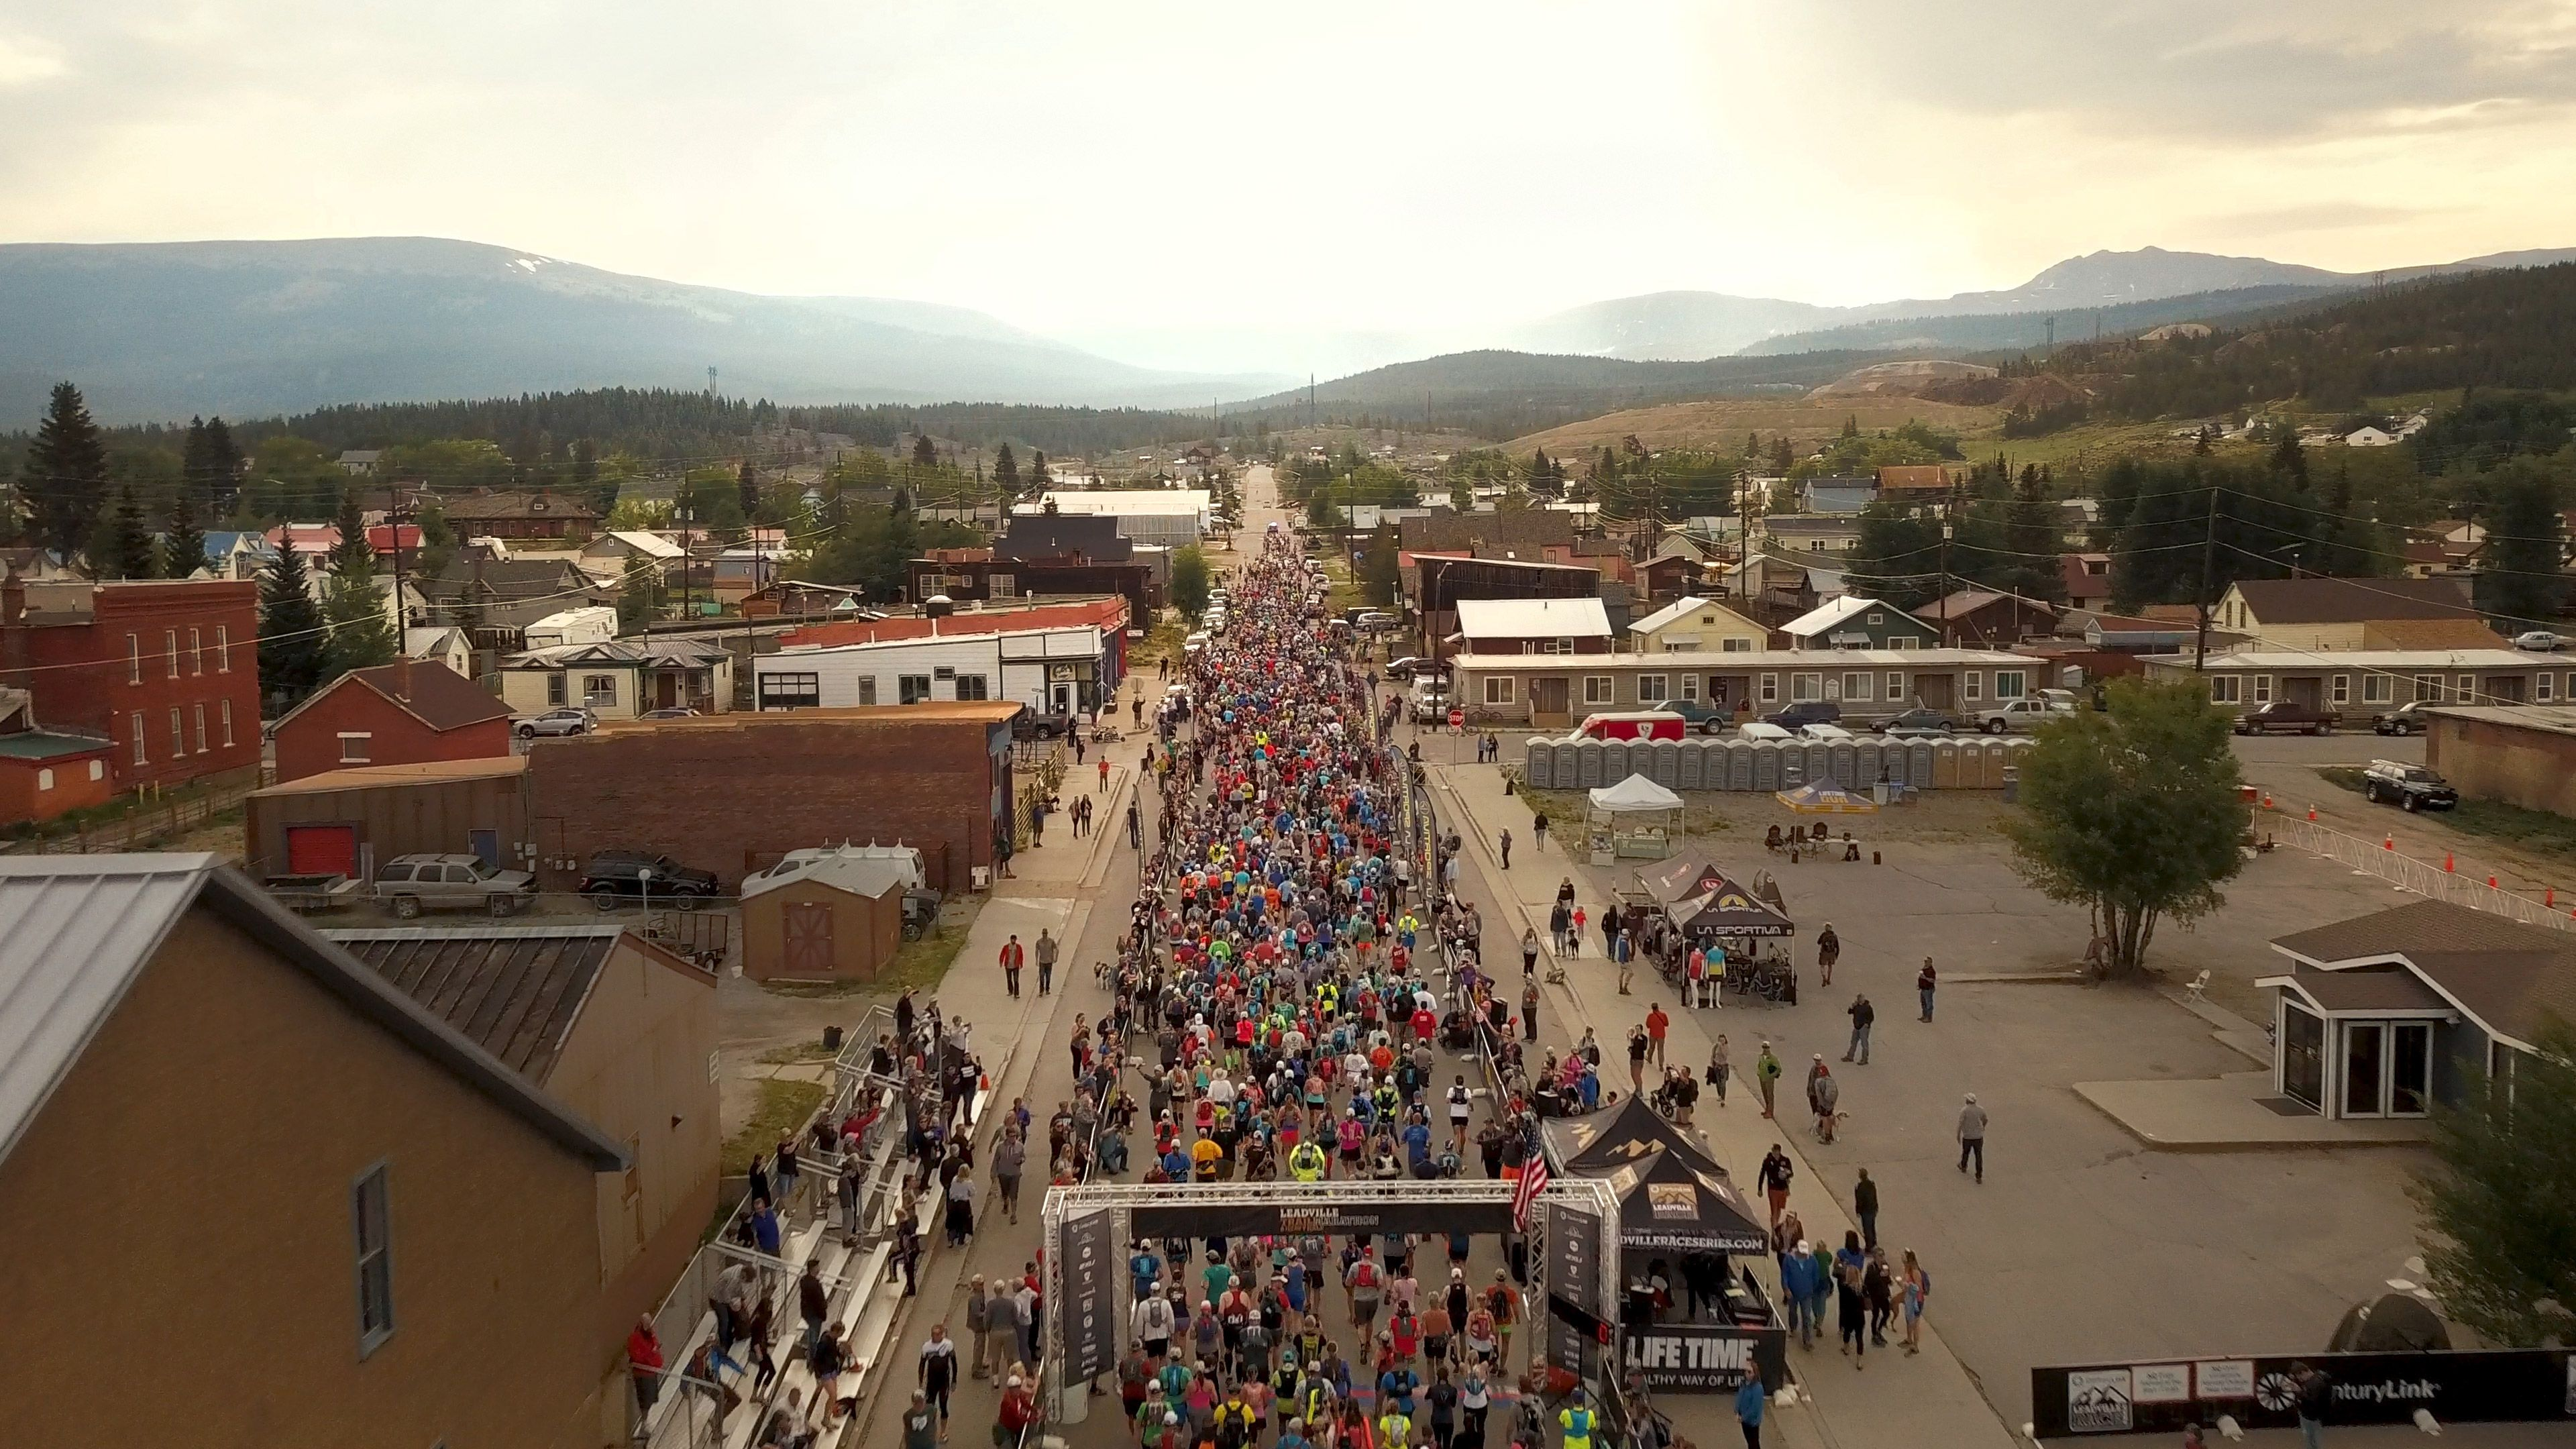 Film: The Leadville Trail Marathon